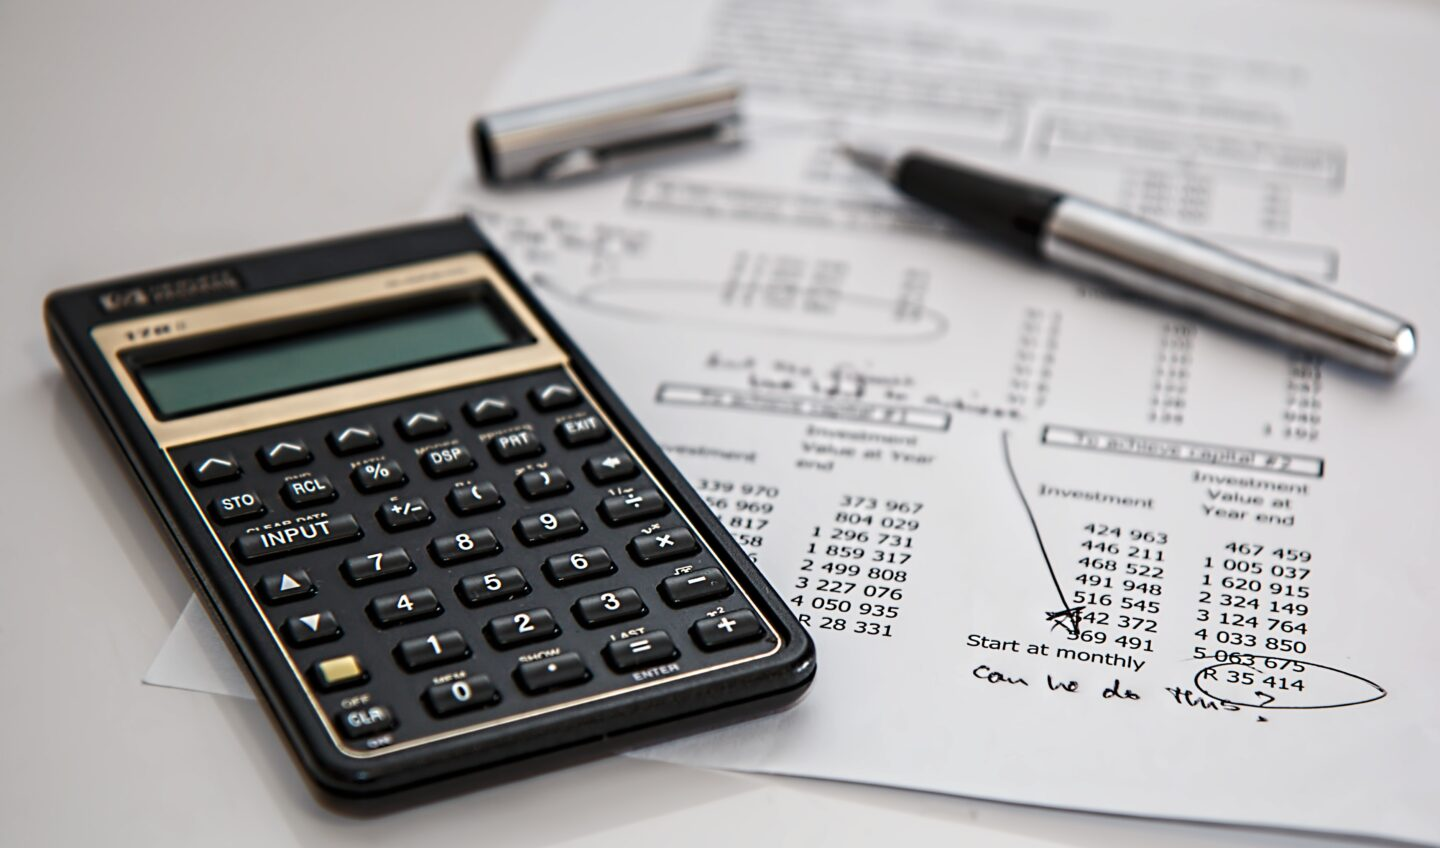 calculator and money budgeting sheet with pen